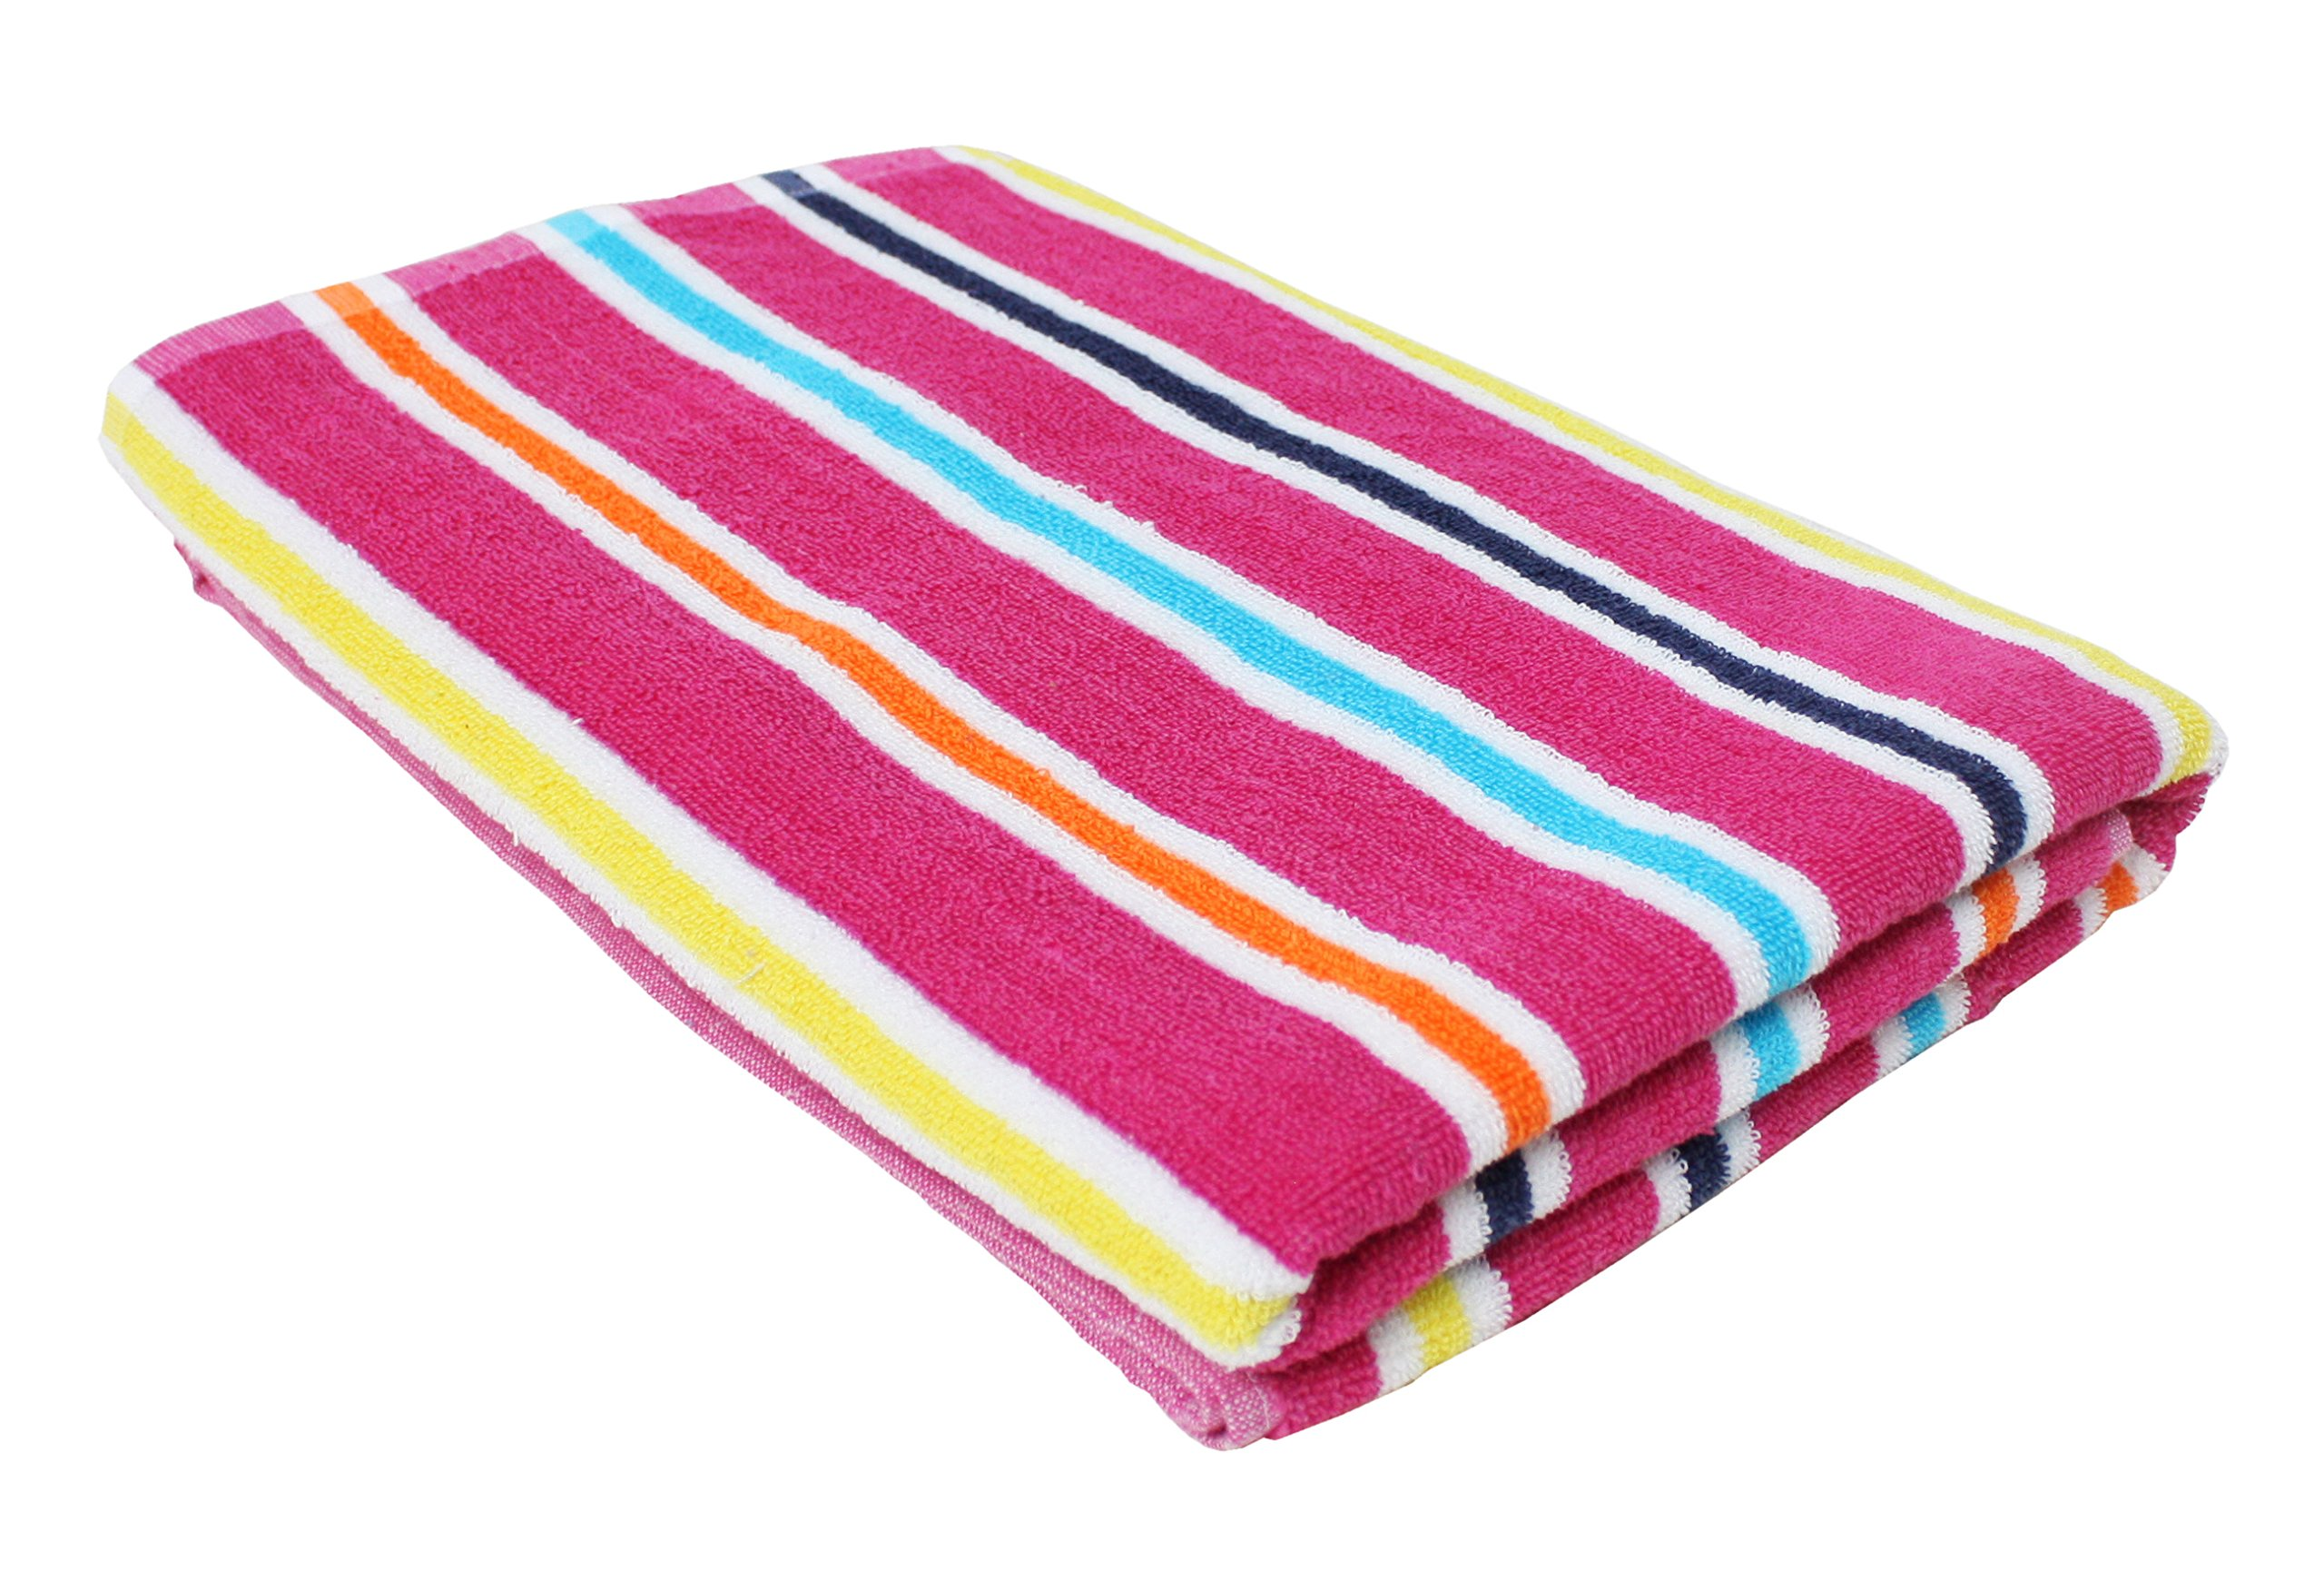 Candy Stripe Terry Cotton Beach Towel, 32x64'', Soft Absorbent and Dry Fast for Swimming Pool, Beach and Spa-Pink